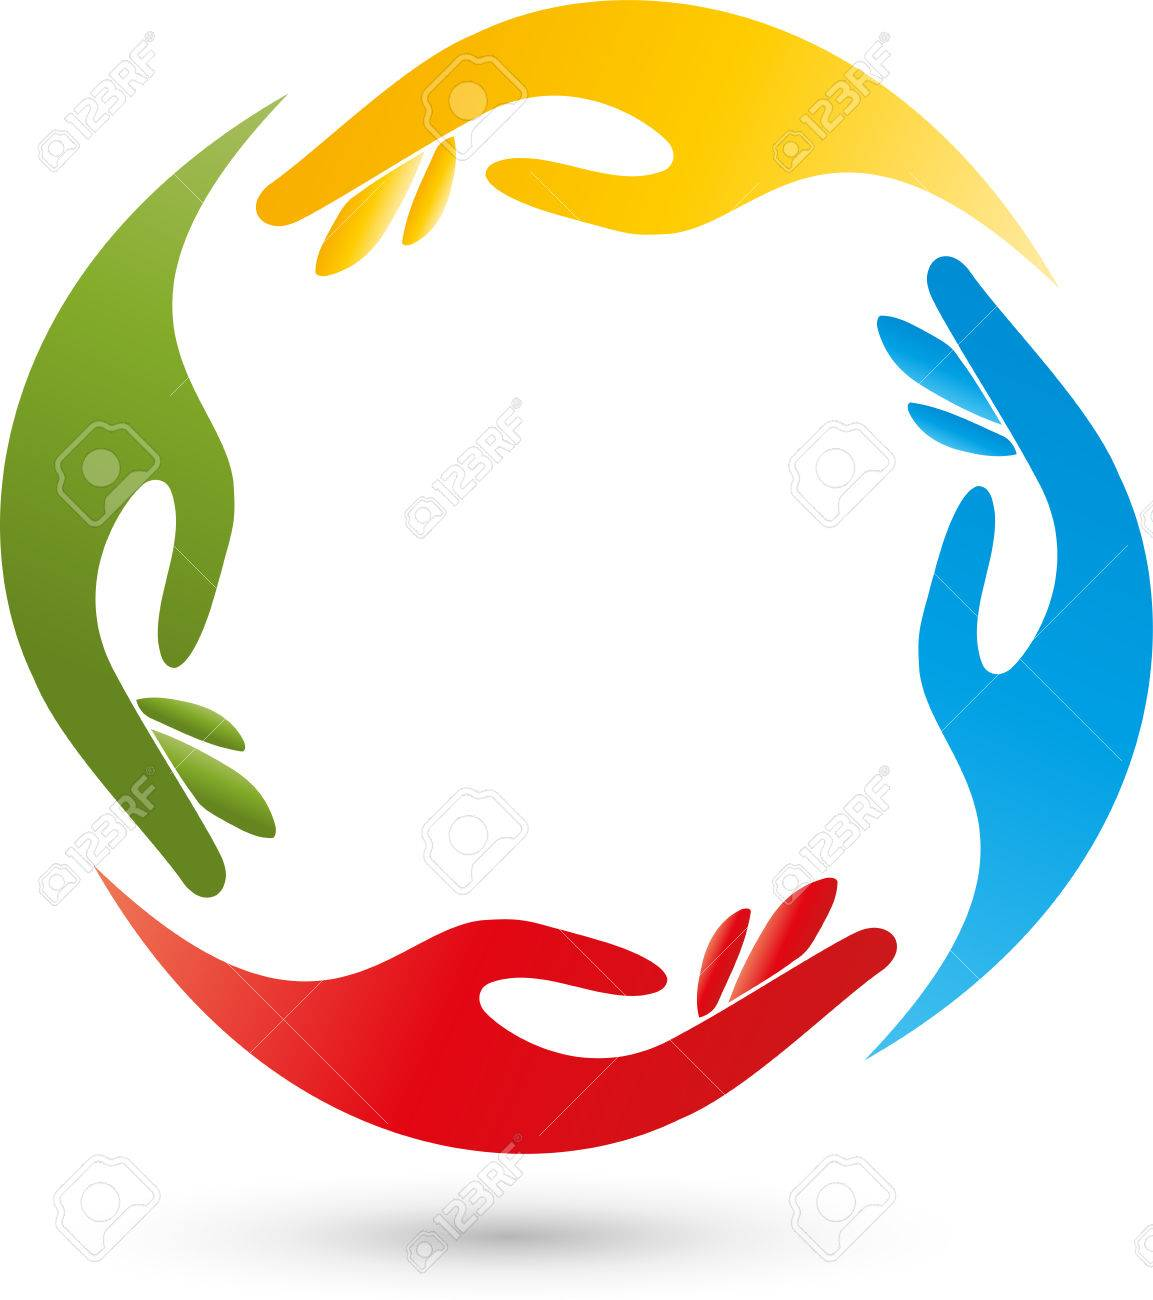 four hands helpers team logo royalty free cliparts vectors and